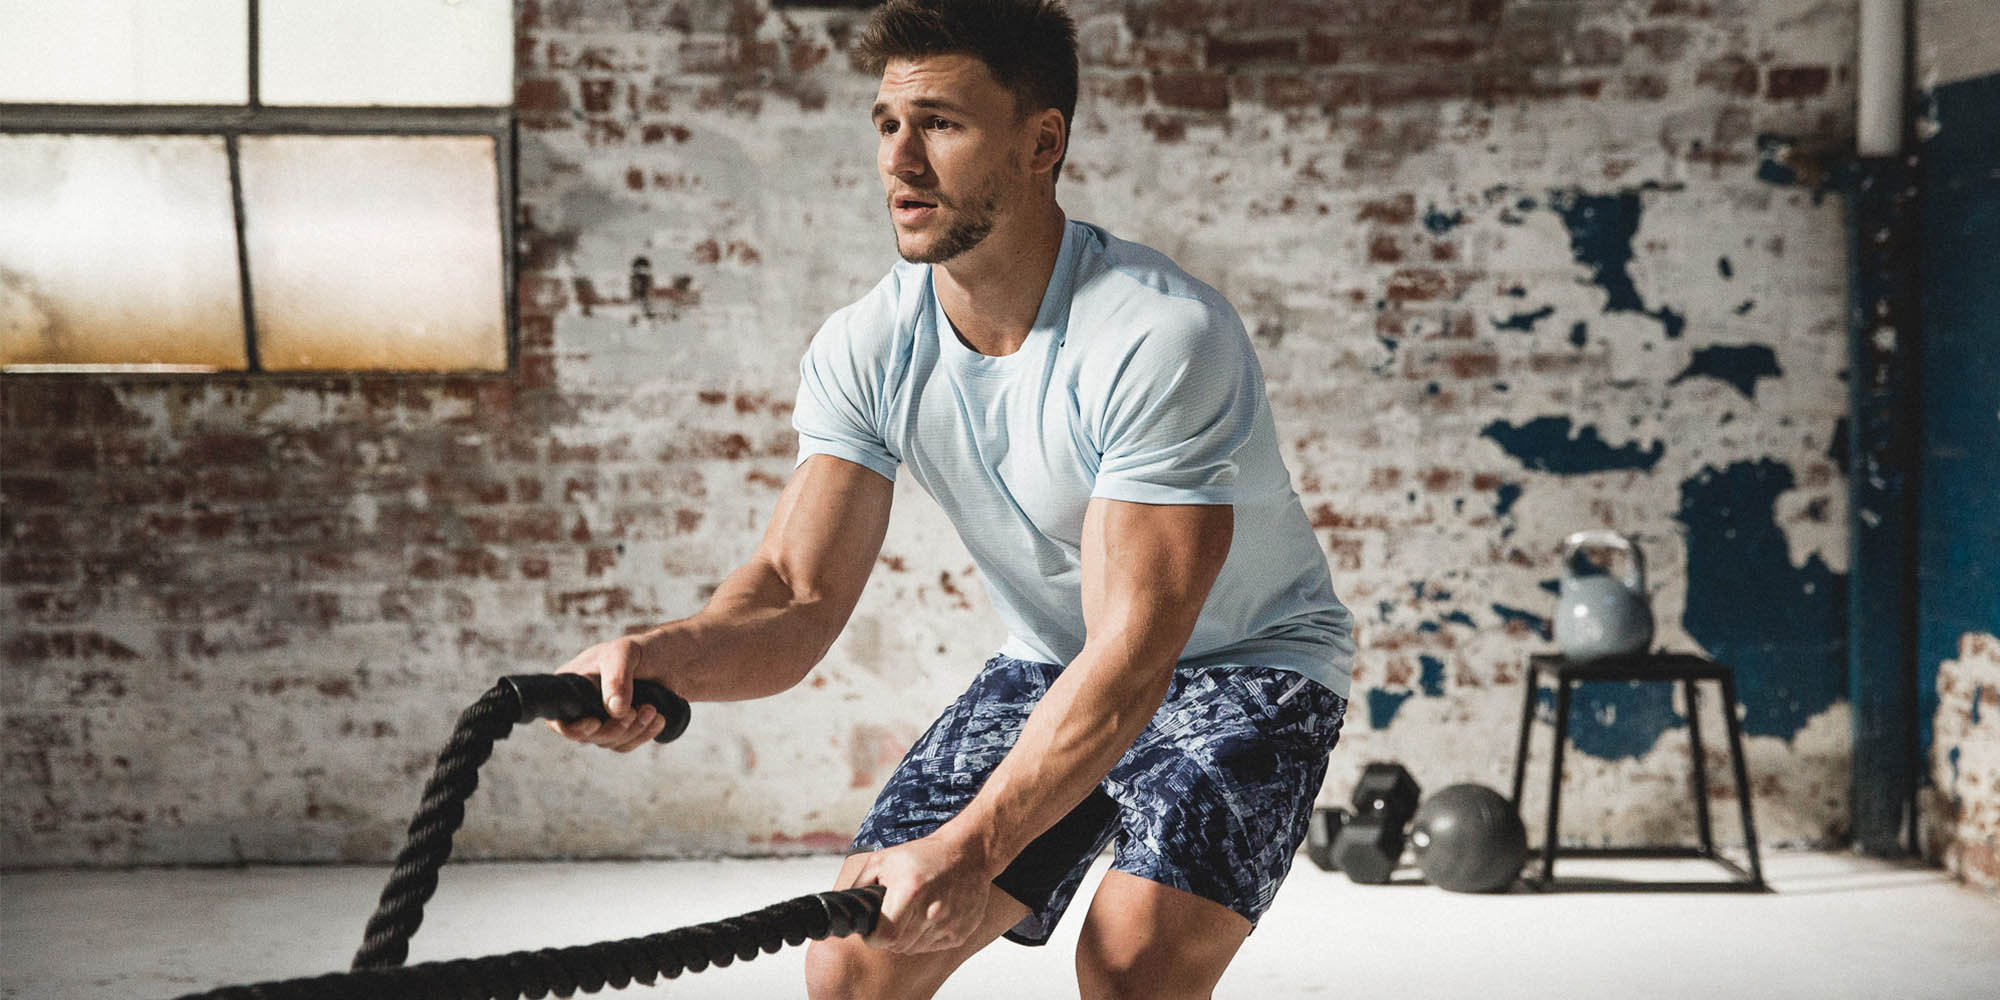 Fitness Gear For Your Summer Workouts